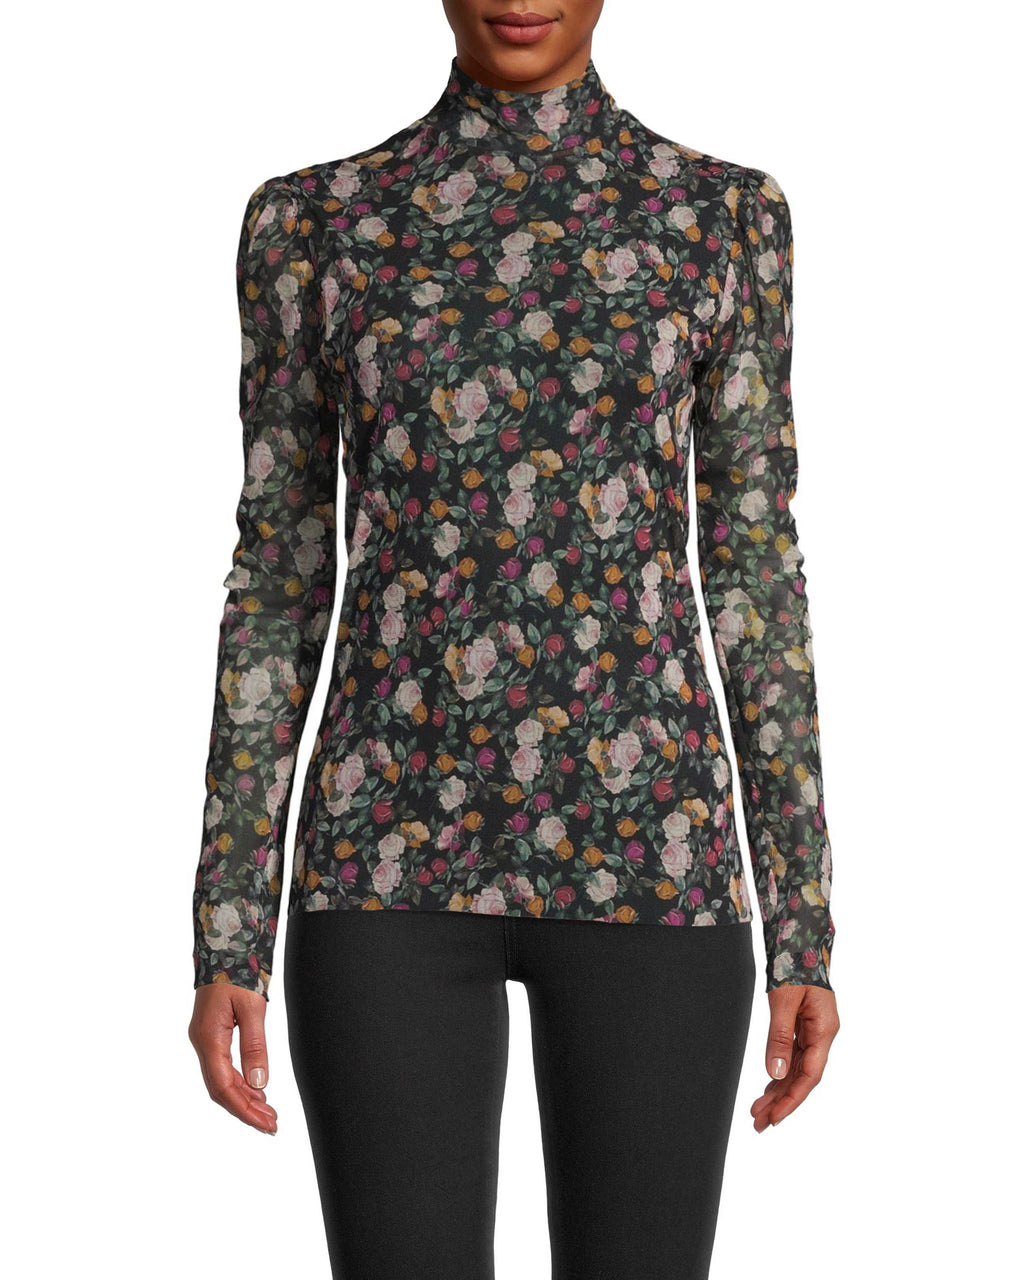 CT18197 - PRINTED MESH LONG SLEEVE MOCK NECK TOP - tops - shirts - Designed in lightweight mesh, this printed top has a slight mock neck, long sleeves and is perfect for layering. Add 1 line break Stylist tip: Wear with your favorite jeans and a leather jacket for an edgy, stylish outfit.